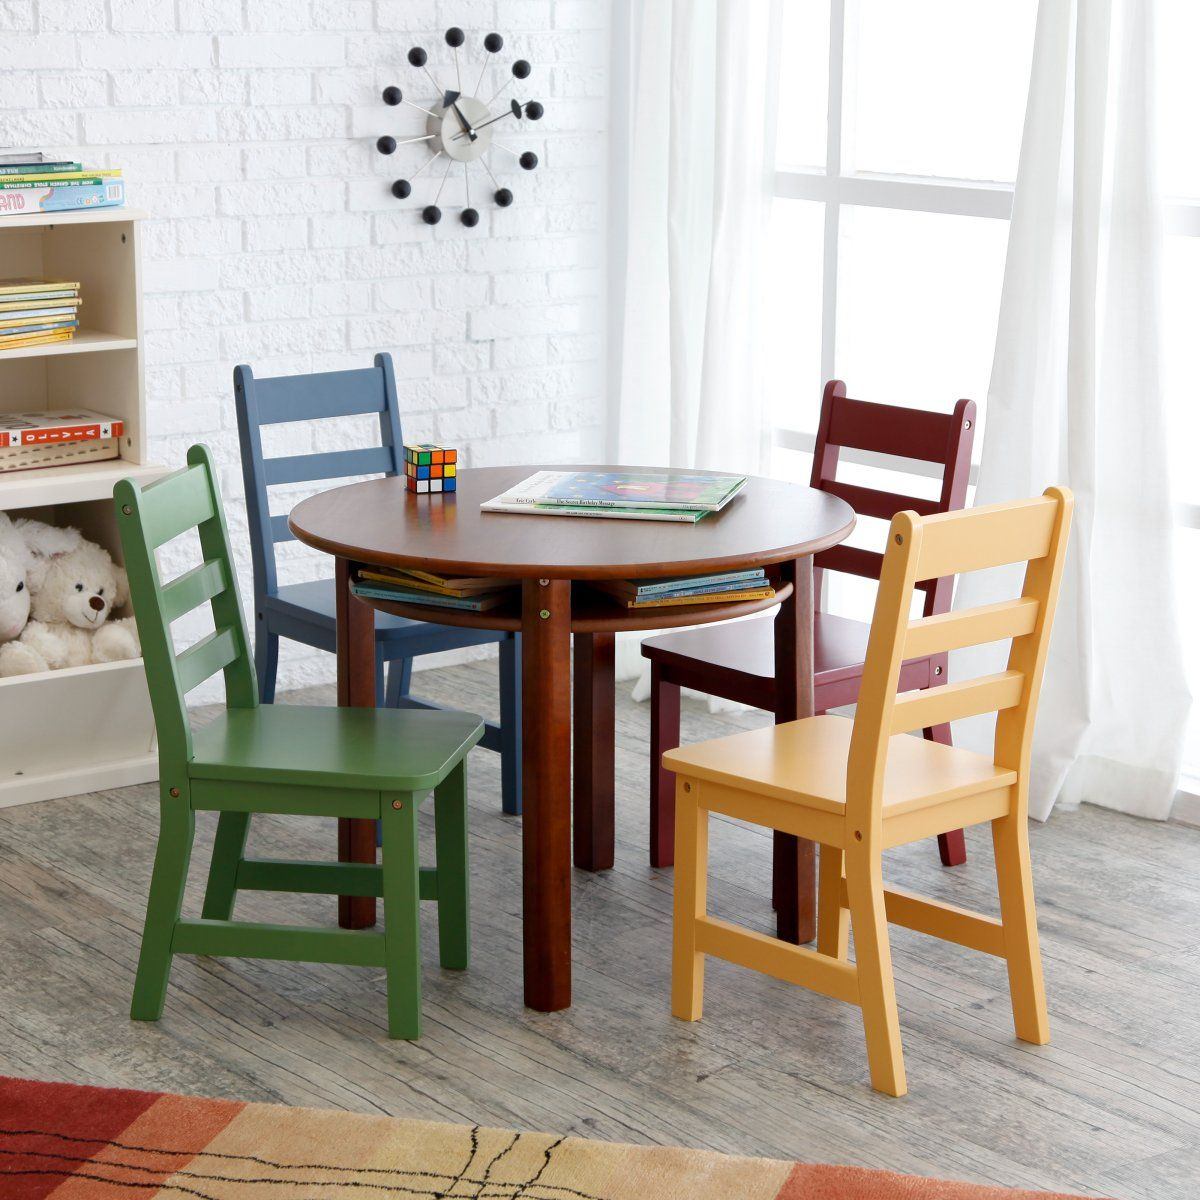 Lipper Childrens Walnut Round Table And 4 Chairs   Childrens Table And  Chair Sets At Childrens